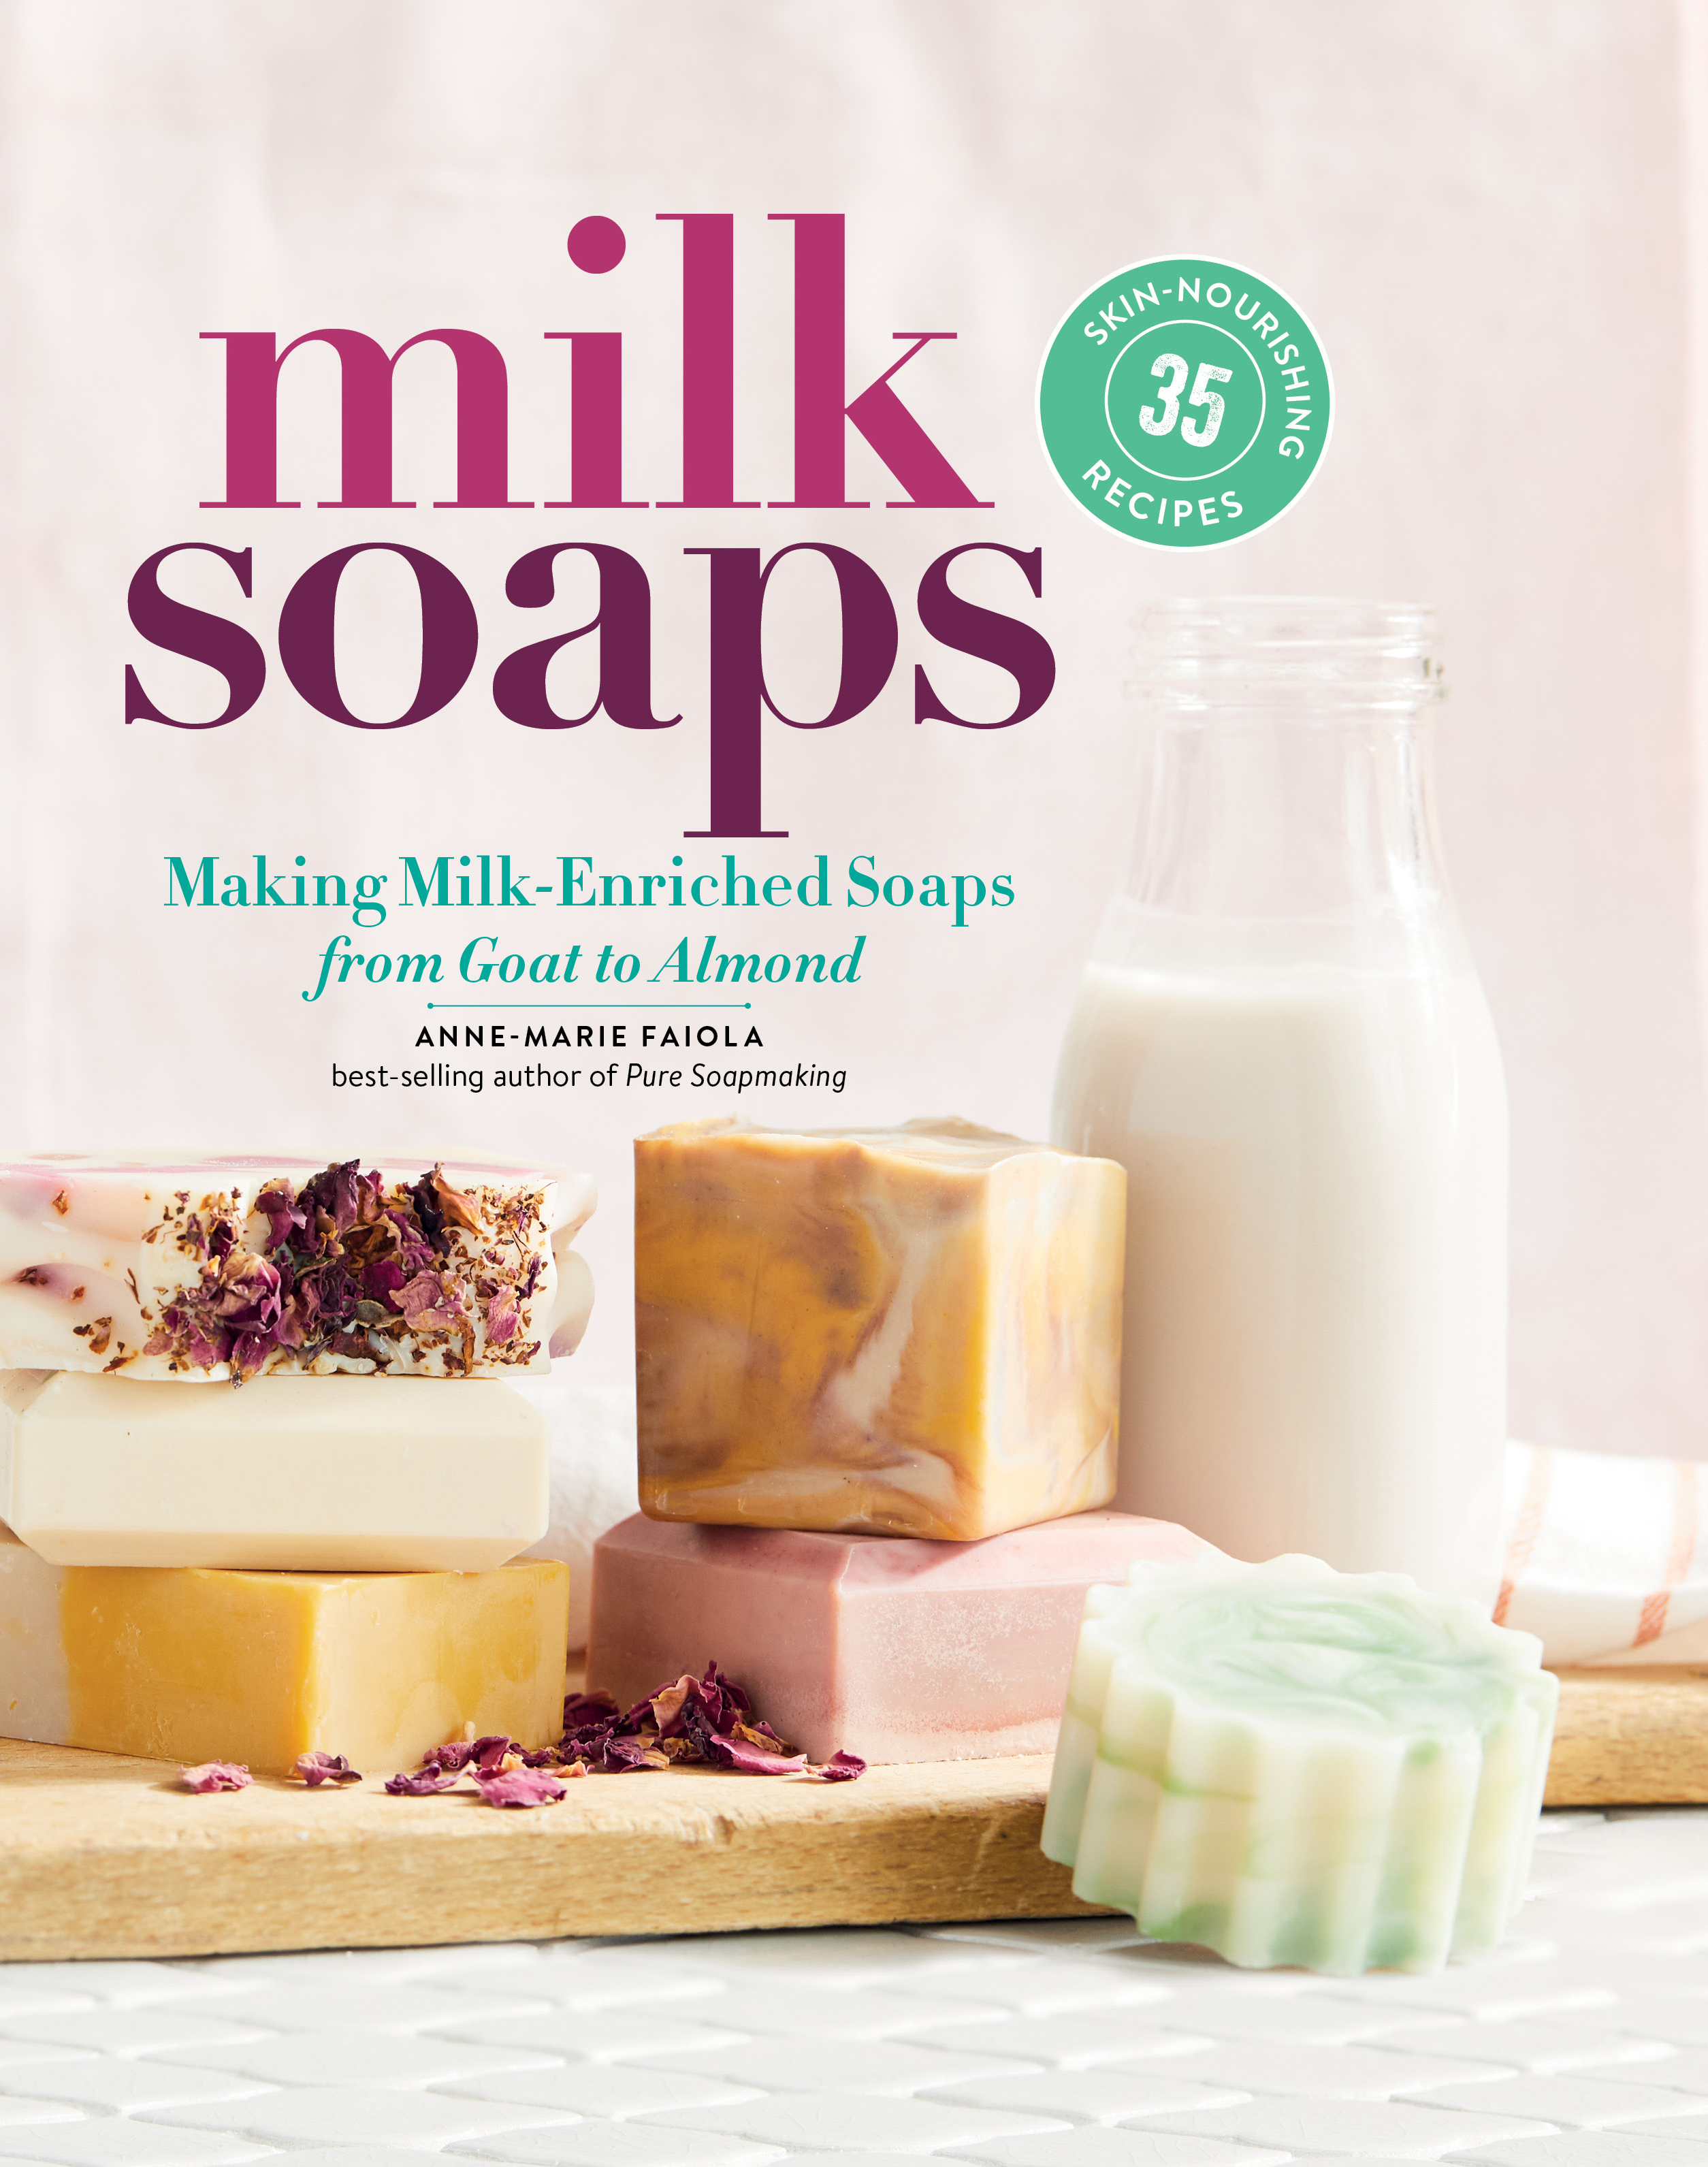 Milk Soaps 35 Skin-Nourishing Recipes for Making Milk-Enriched Soaps, from Goat to Almond - Anne-Marie Faiola